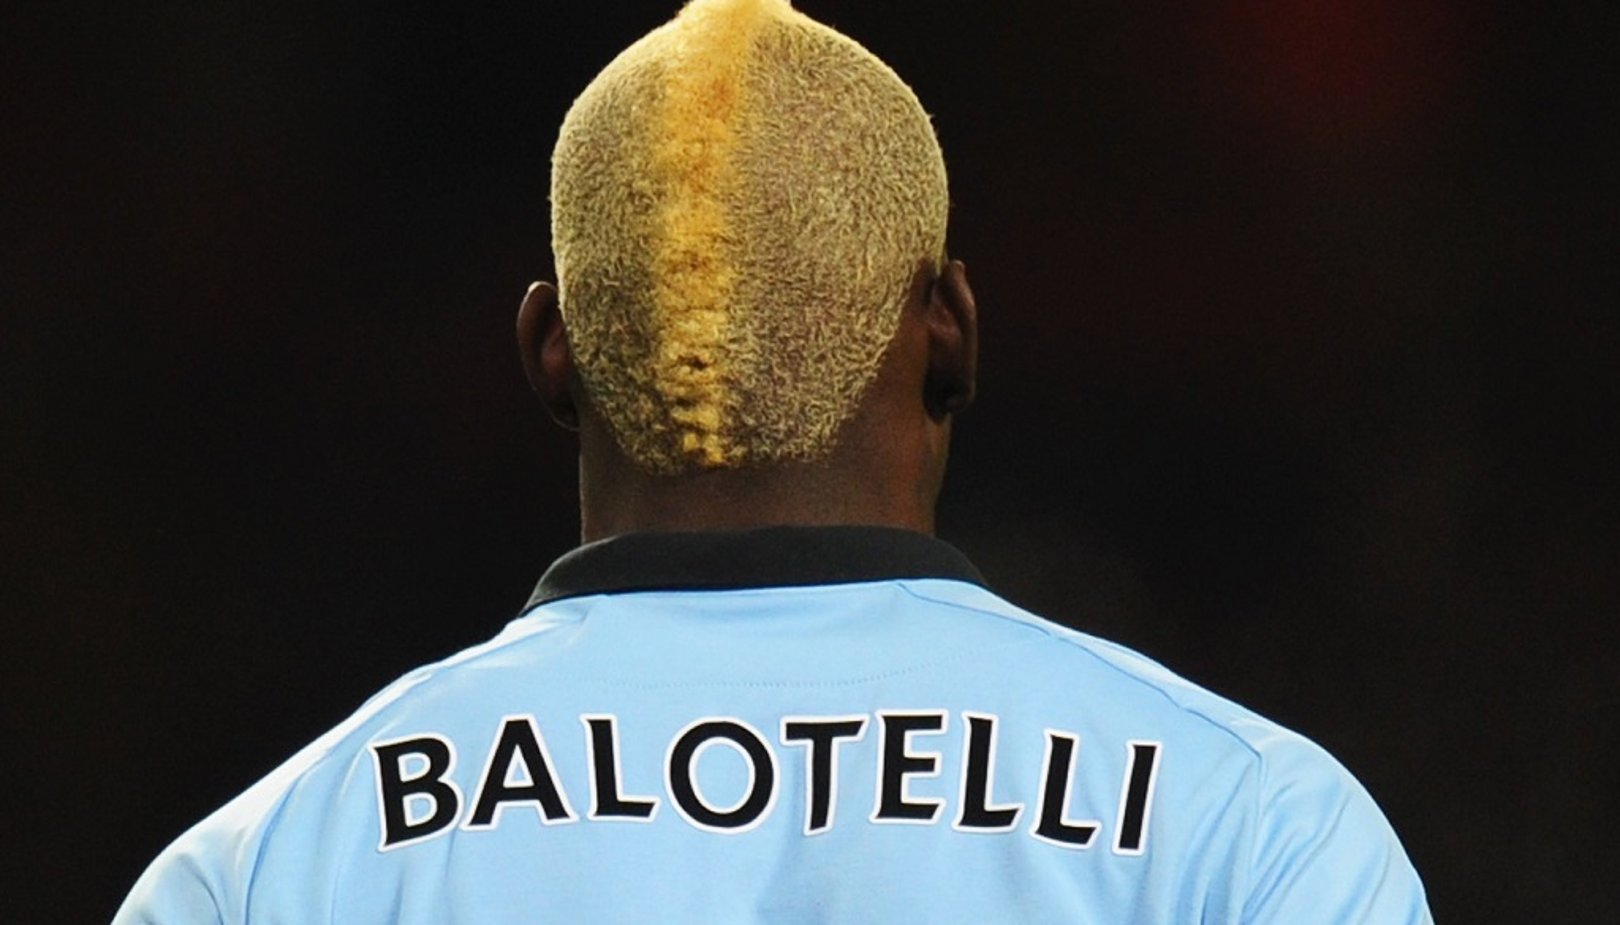 Mario Balotelli to play for City Legends team